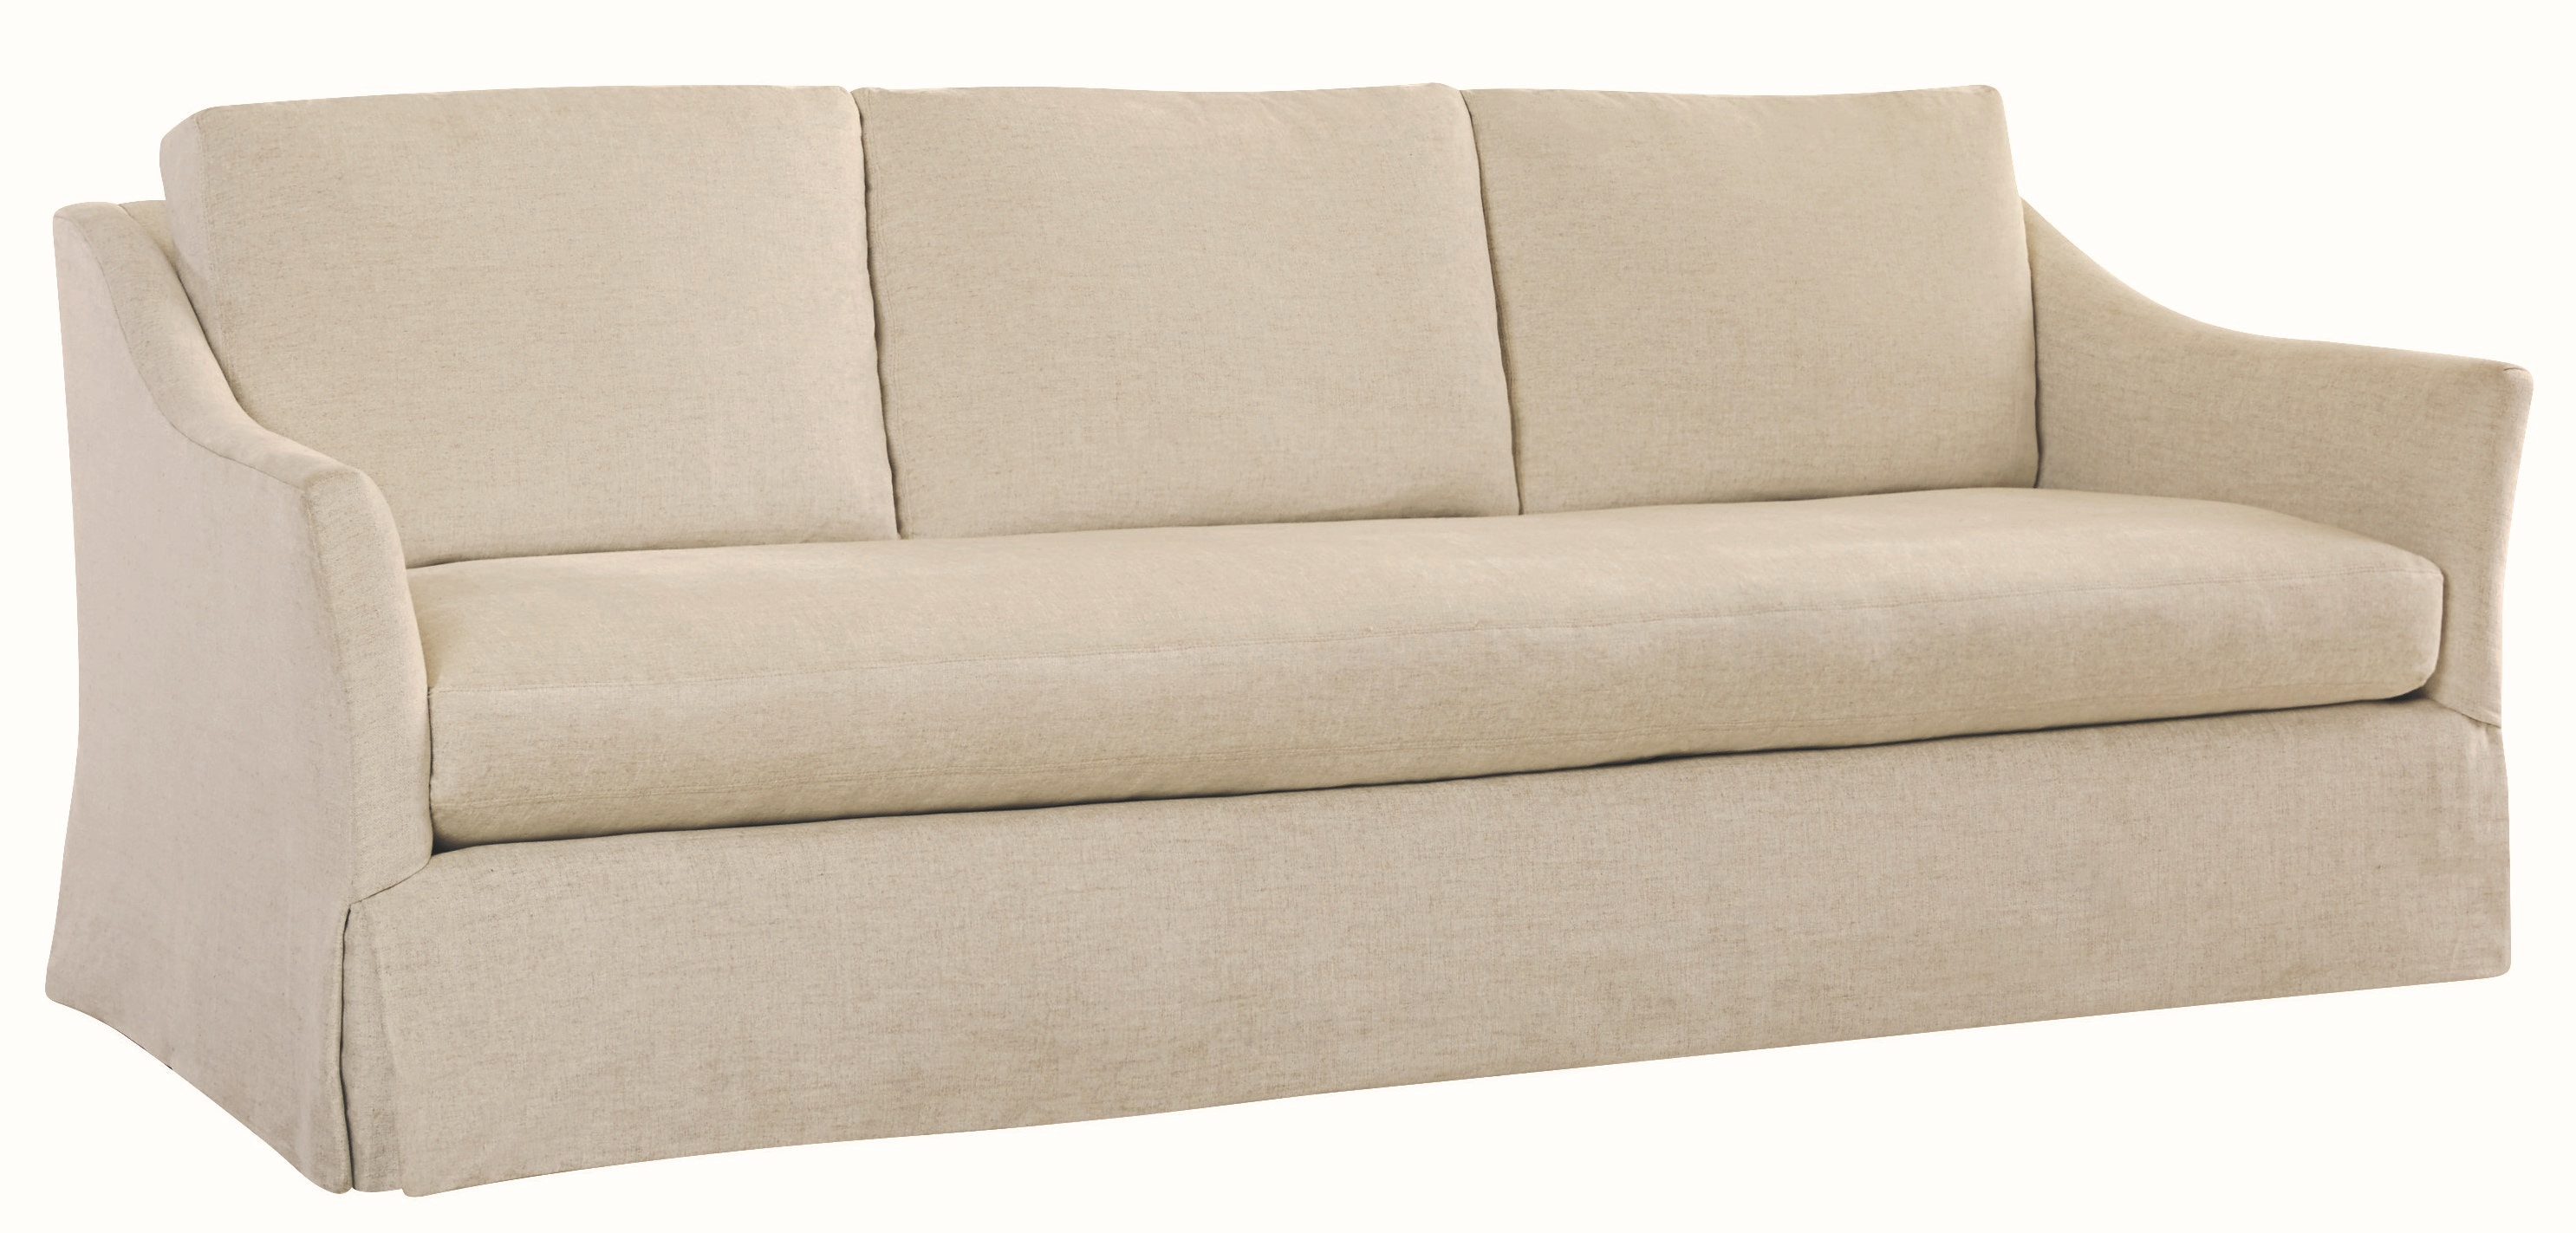 Lee Industries Sofa 3511 03